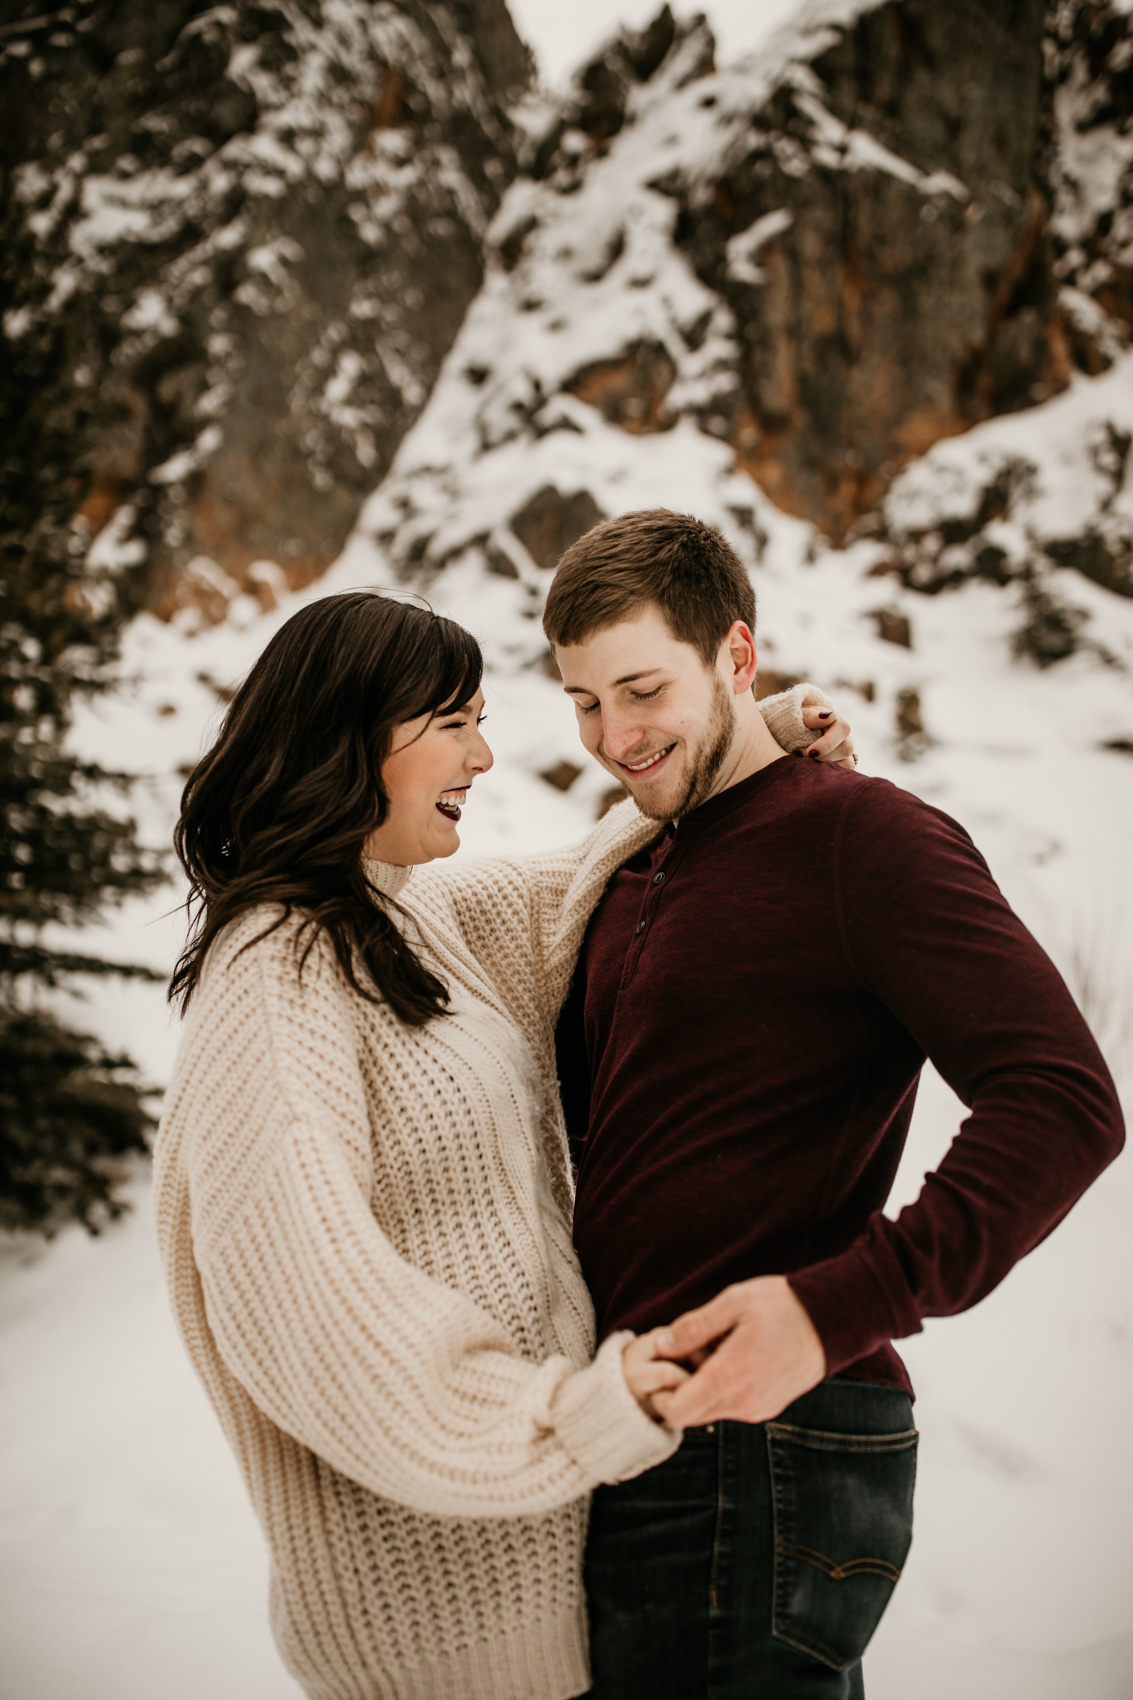 Molly-Trenton_Montana-Waterfall-Engagment-Session-23.jpg